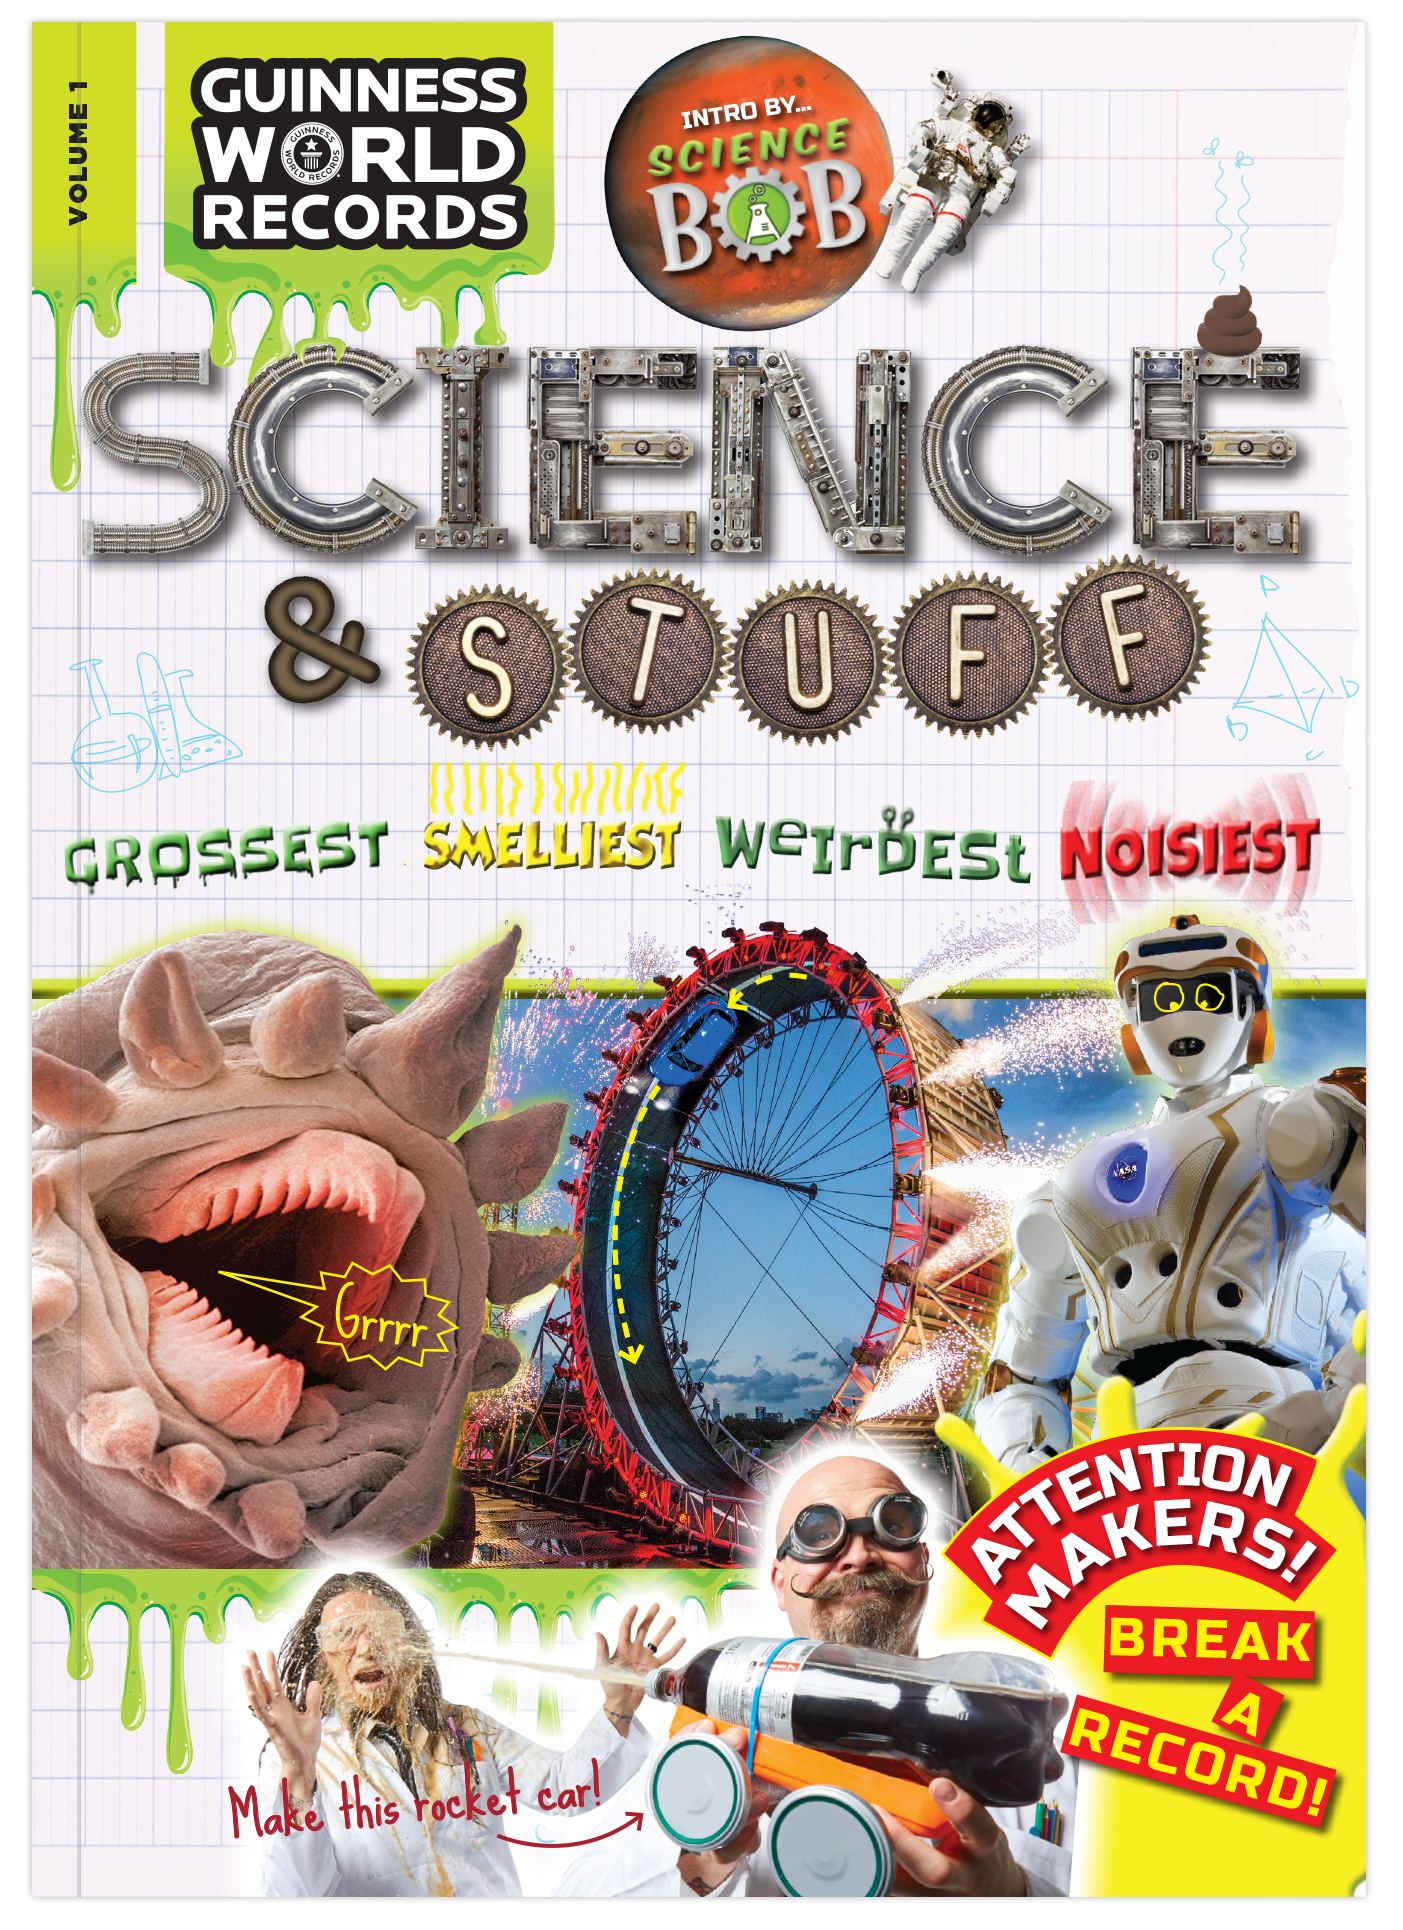 stuff science records guinness recommendation read facts gwr owlkids across america incredible human body